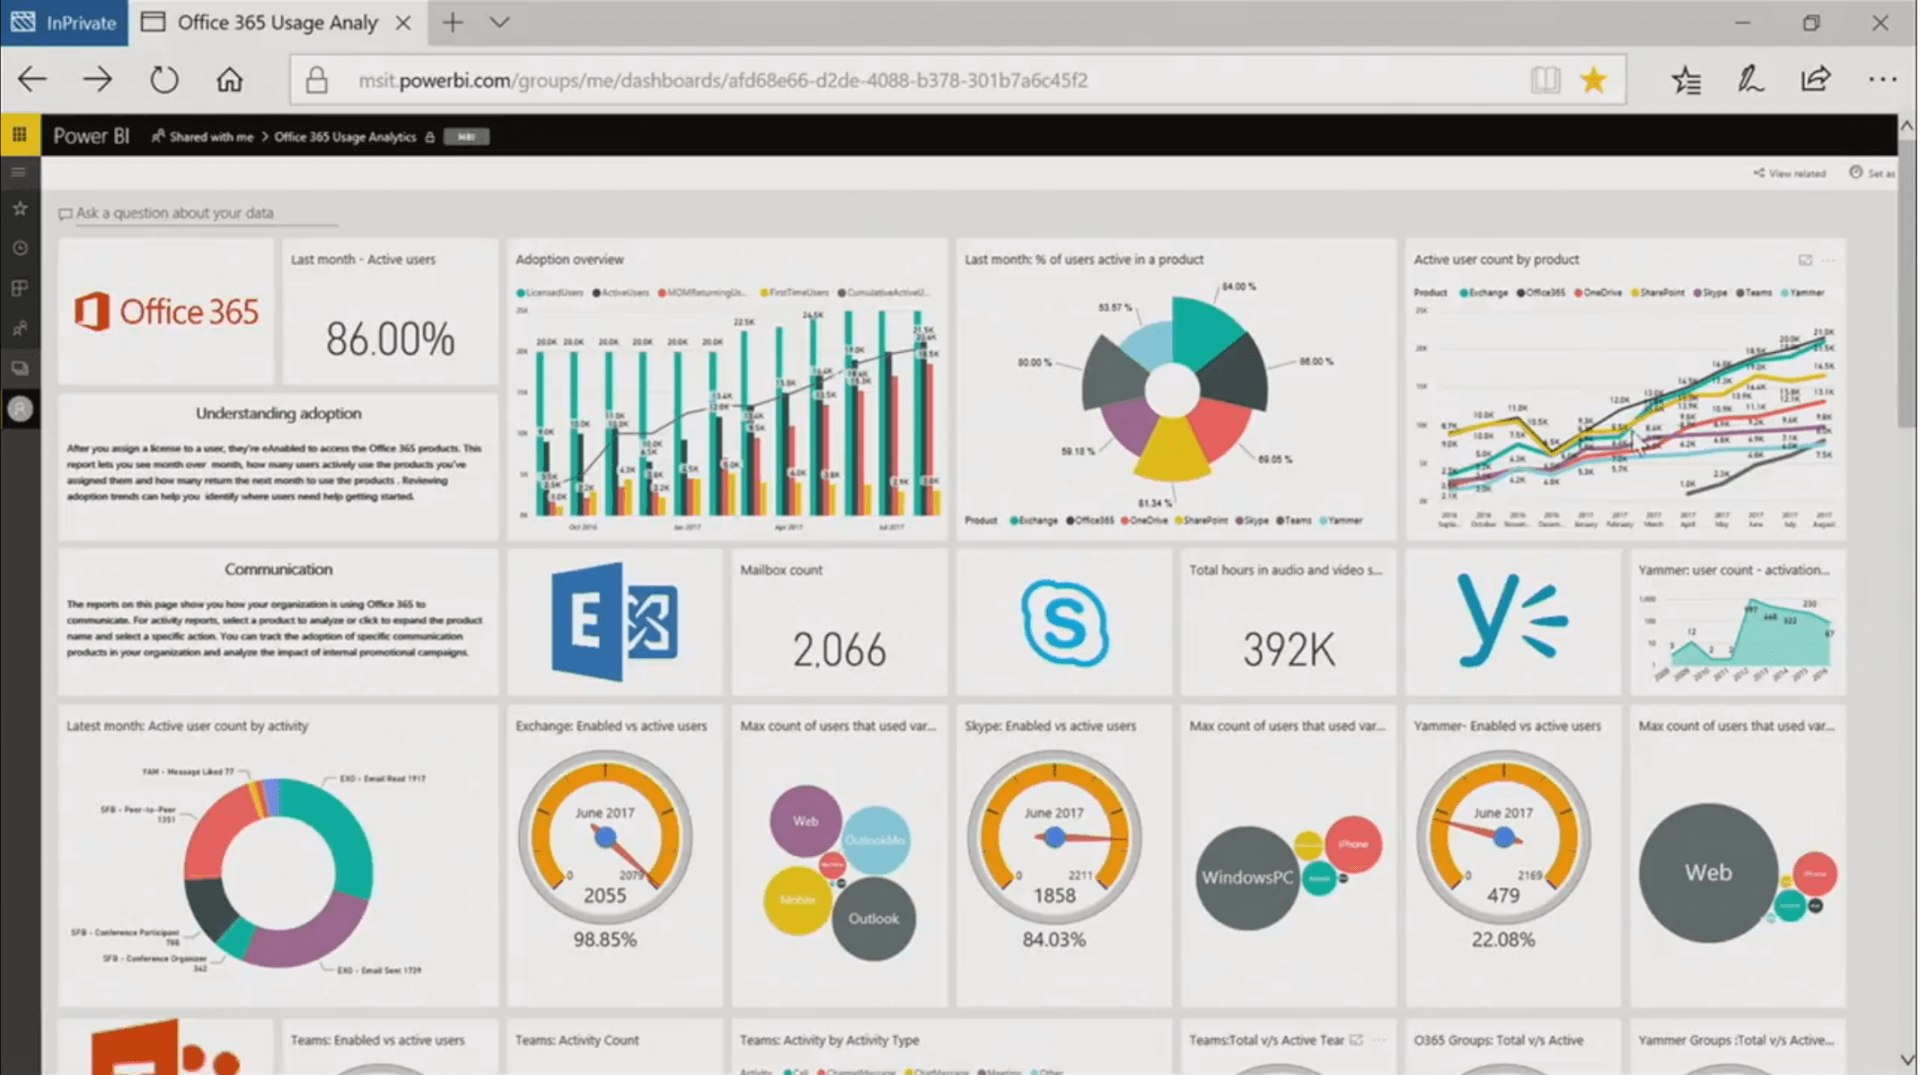 Texte de remplacement généré par une machine : lnPrivate Power BI Office 365 Usage Analyx + v CD msit powerbi.com/groups/me/dashboards/afd68e66QdeA08%378-301b7a6c45f2 Ask a Weston about ytxr data Last • Acti-« O Office 365 86000/0 utest use xtn•ty Last active n a ptOOXt users 2017 2055 98.850,6 Tens: Act»ey c•nt 2066 Max cent of ActrRy Actraty Type uses 1858 84.03% rot* 392K Max of WindowsPC vô Actr« leu Actn•e 2017 479 22.08% 0365 rot' v/s Actr« user • Mn uses used Web 90